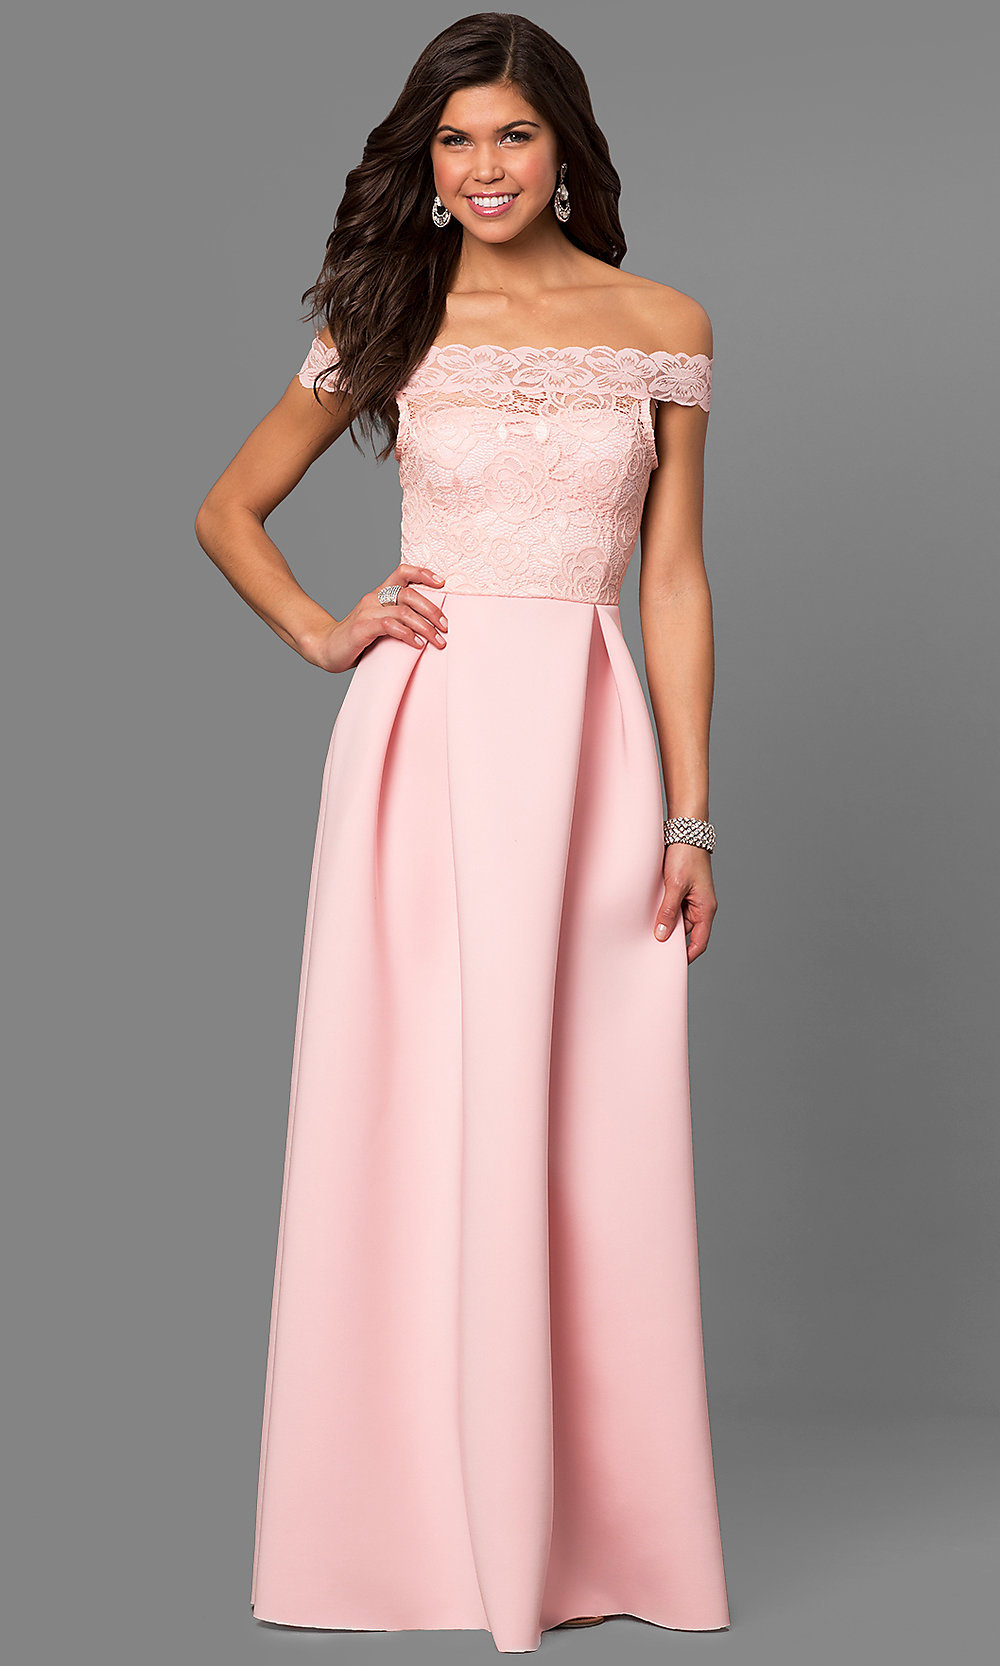 Off-The-Shoulder Lace-Bodice Prom Dress - PromGirl